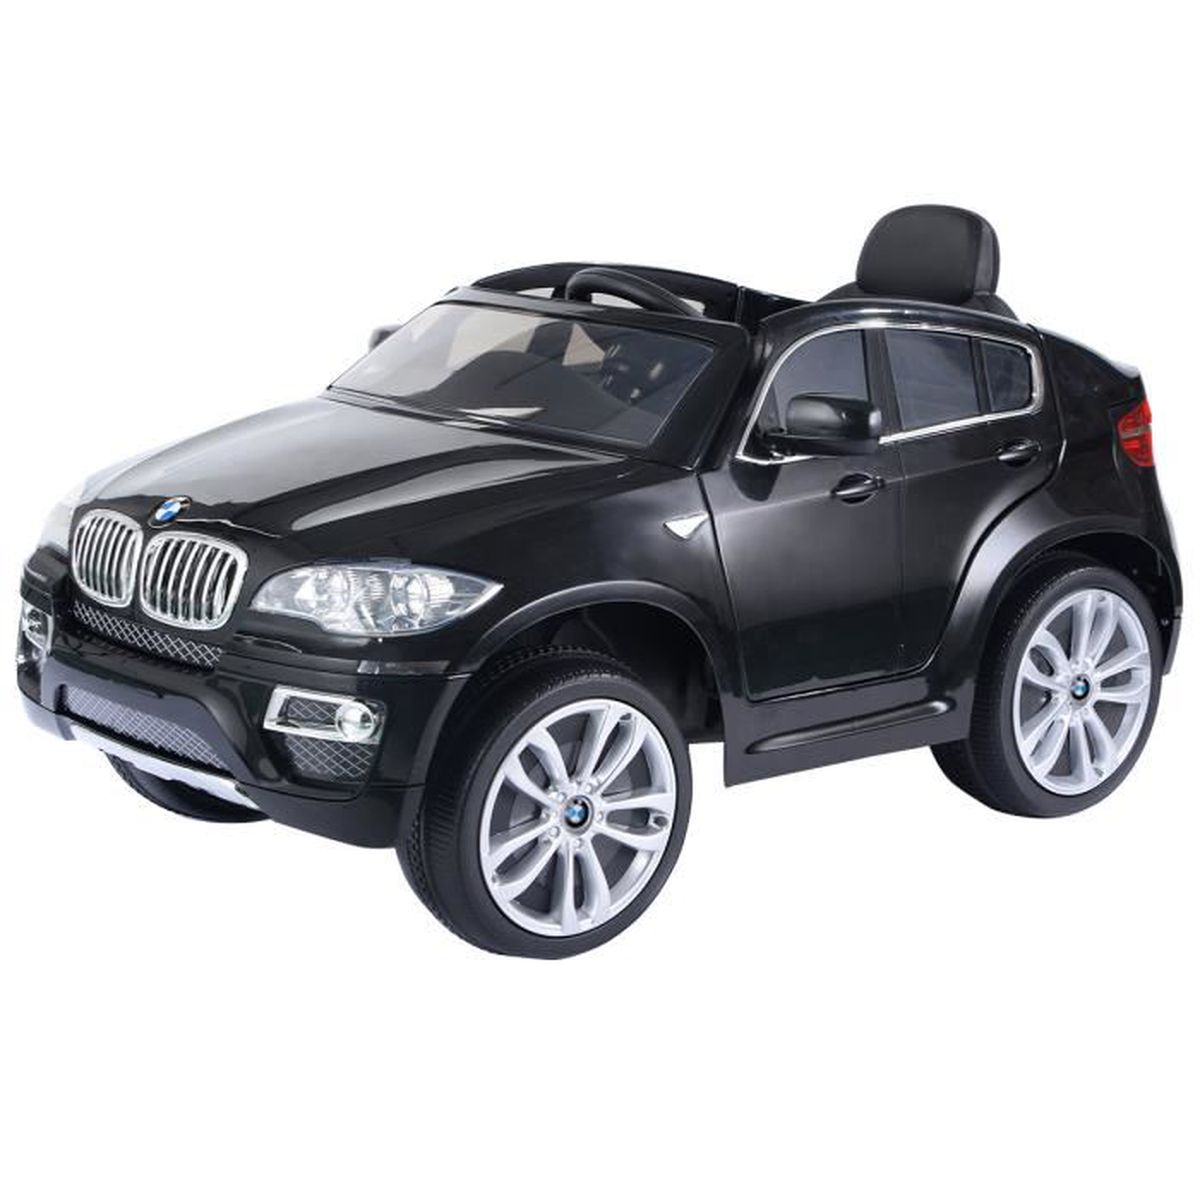 voiture voiture lectrique bmw x6 pour enfant suv auto 12v mp3 radio ouvrant portes achat. Black Bedroom Furniture Sets. Home Design Ideas